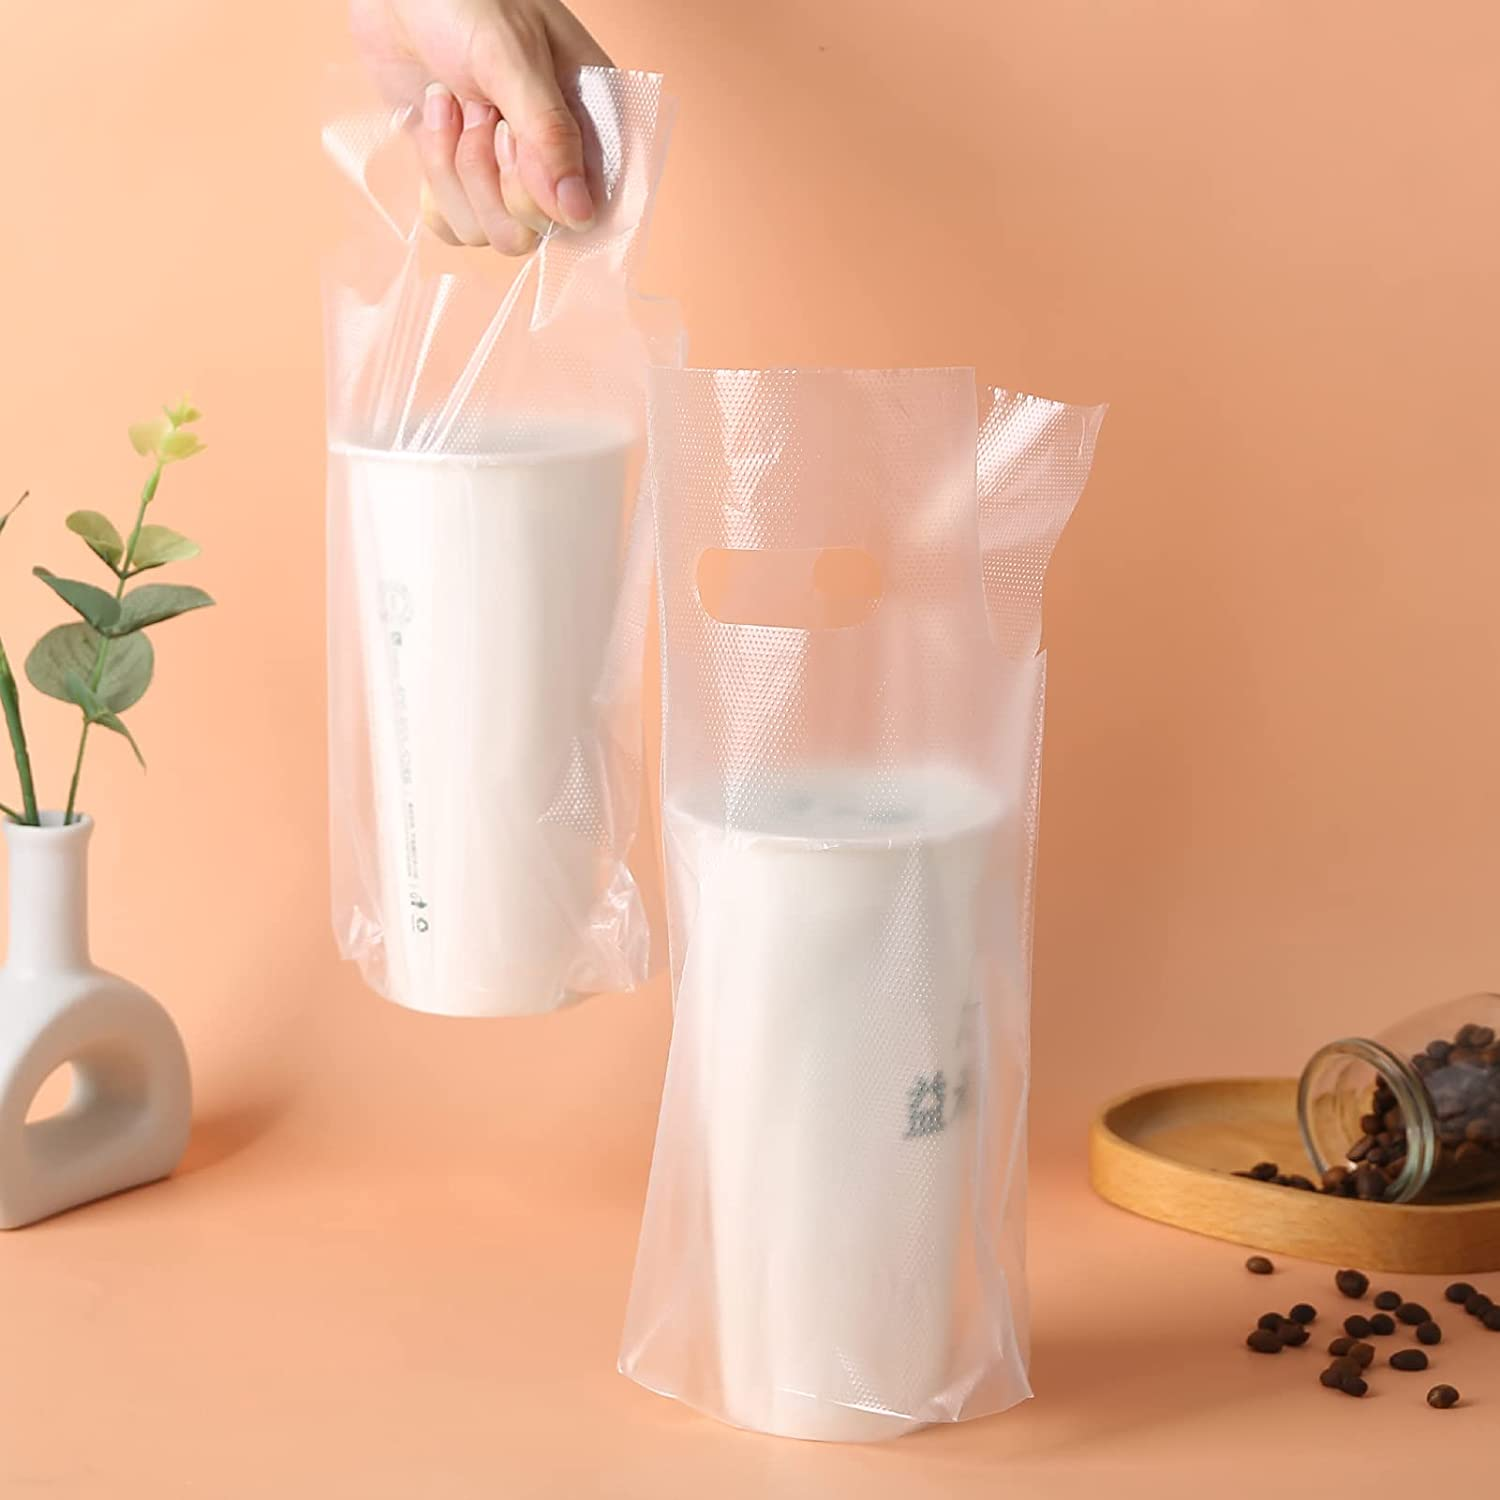 100PCS Clear Handle Drink Drinking Poly Plastic Packaging Bags,Drink Carrier, For Delivery Take Out Cup Holder Bar Restaurant Coffee Shop Supplies cup carriers (16x28cm)